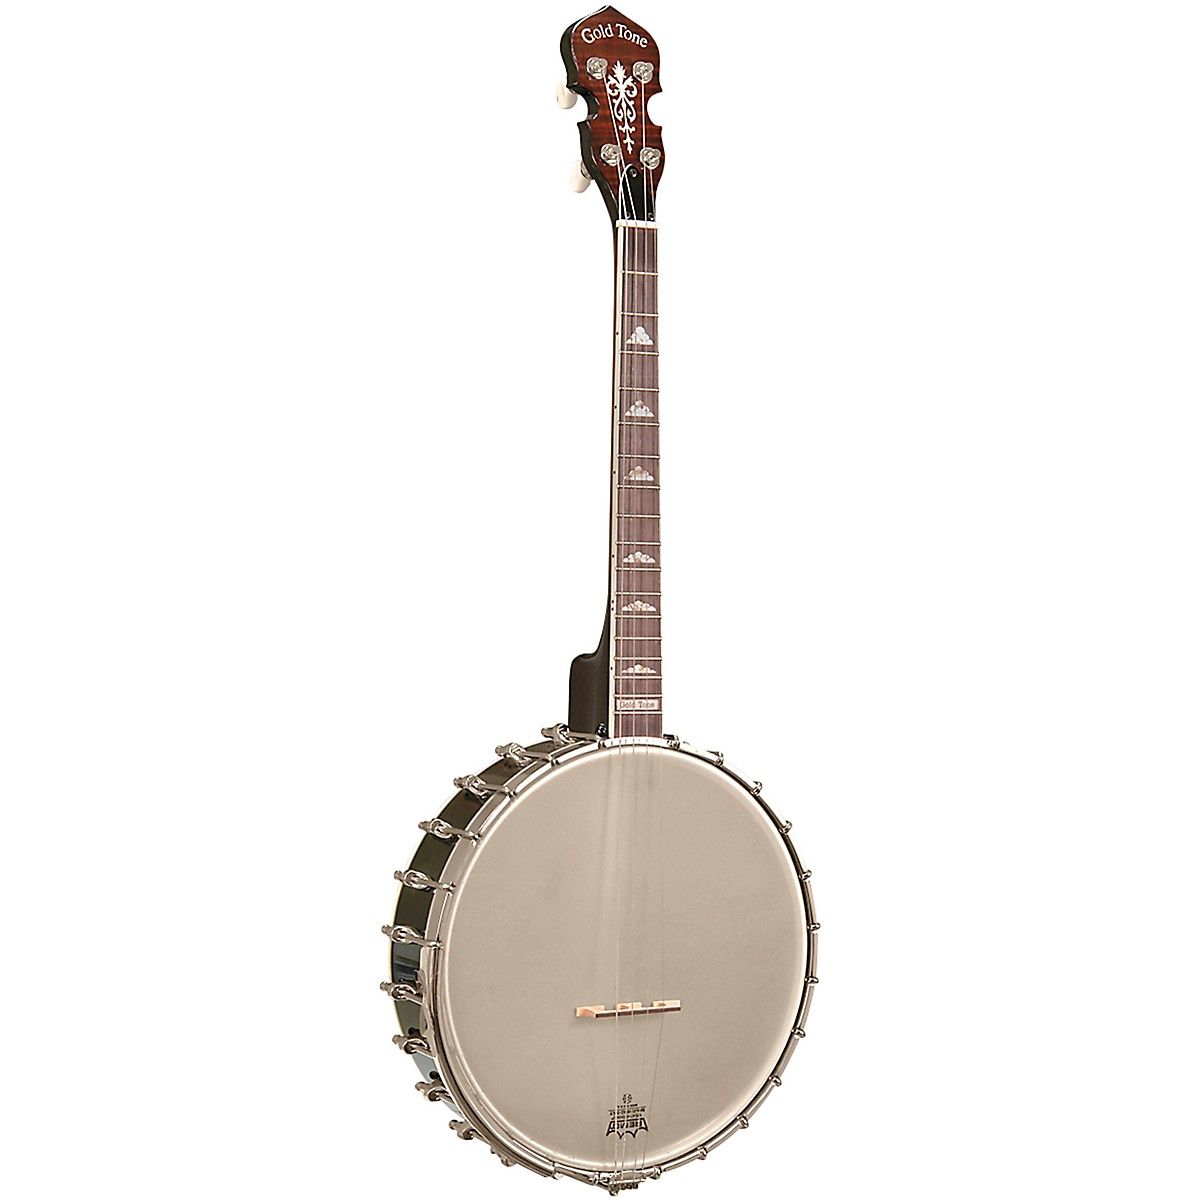 Gold Tone Professional 4-String Irish Tenor Openback Banjo For Left Hand Players